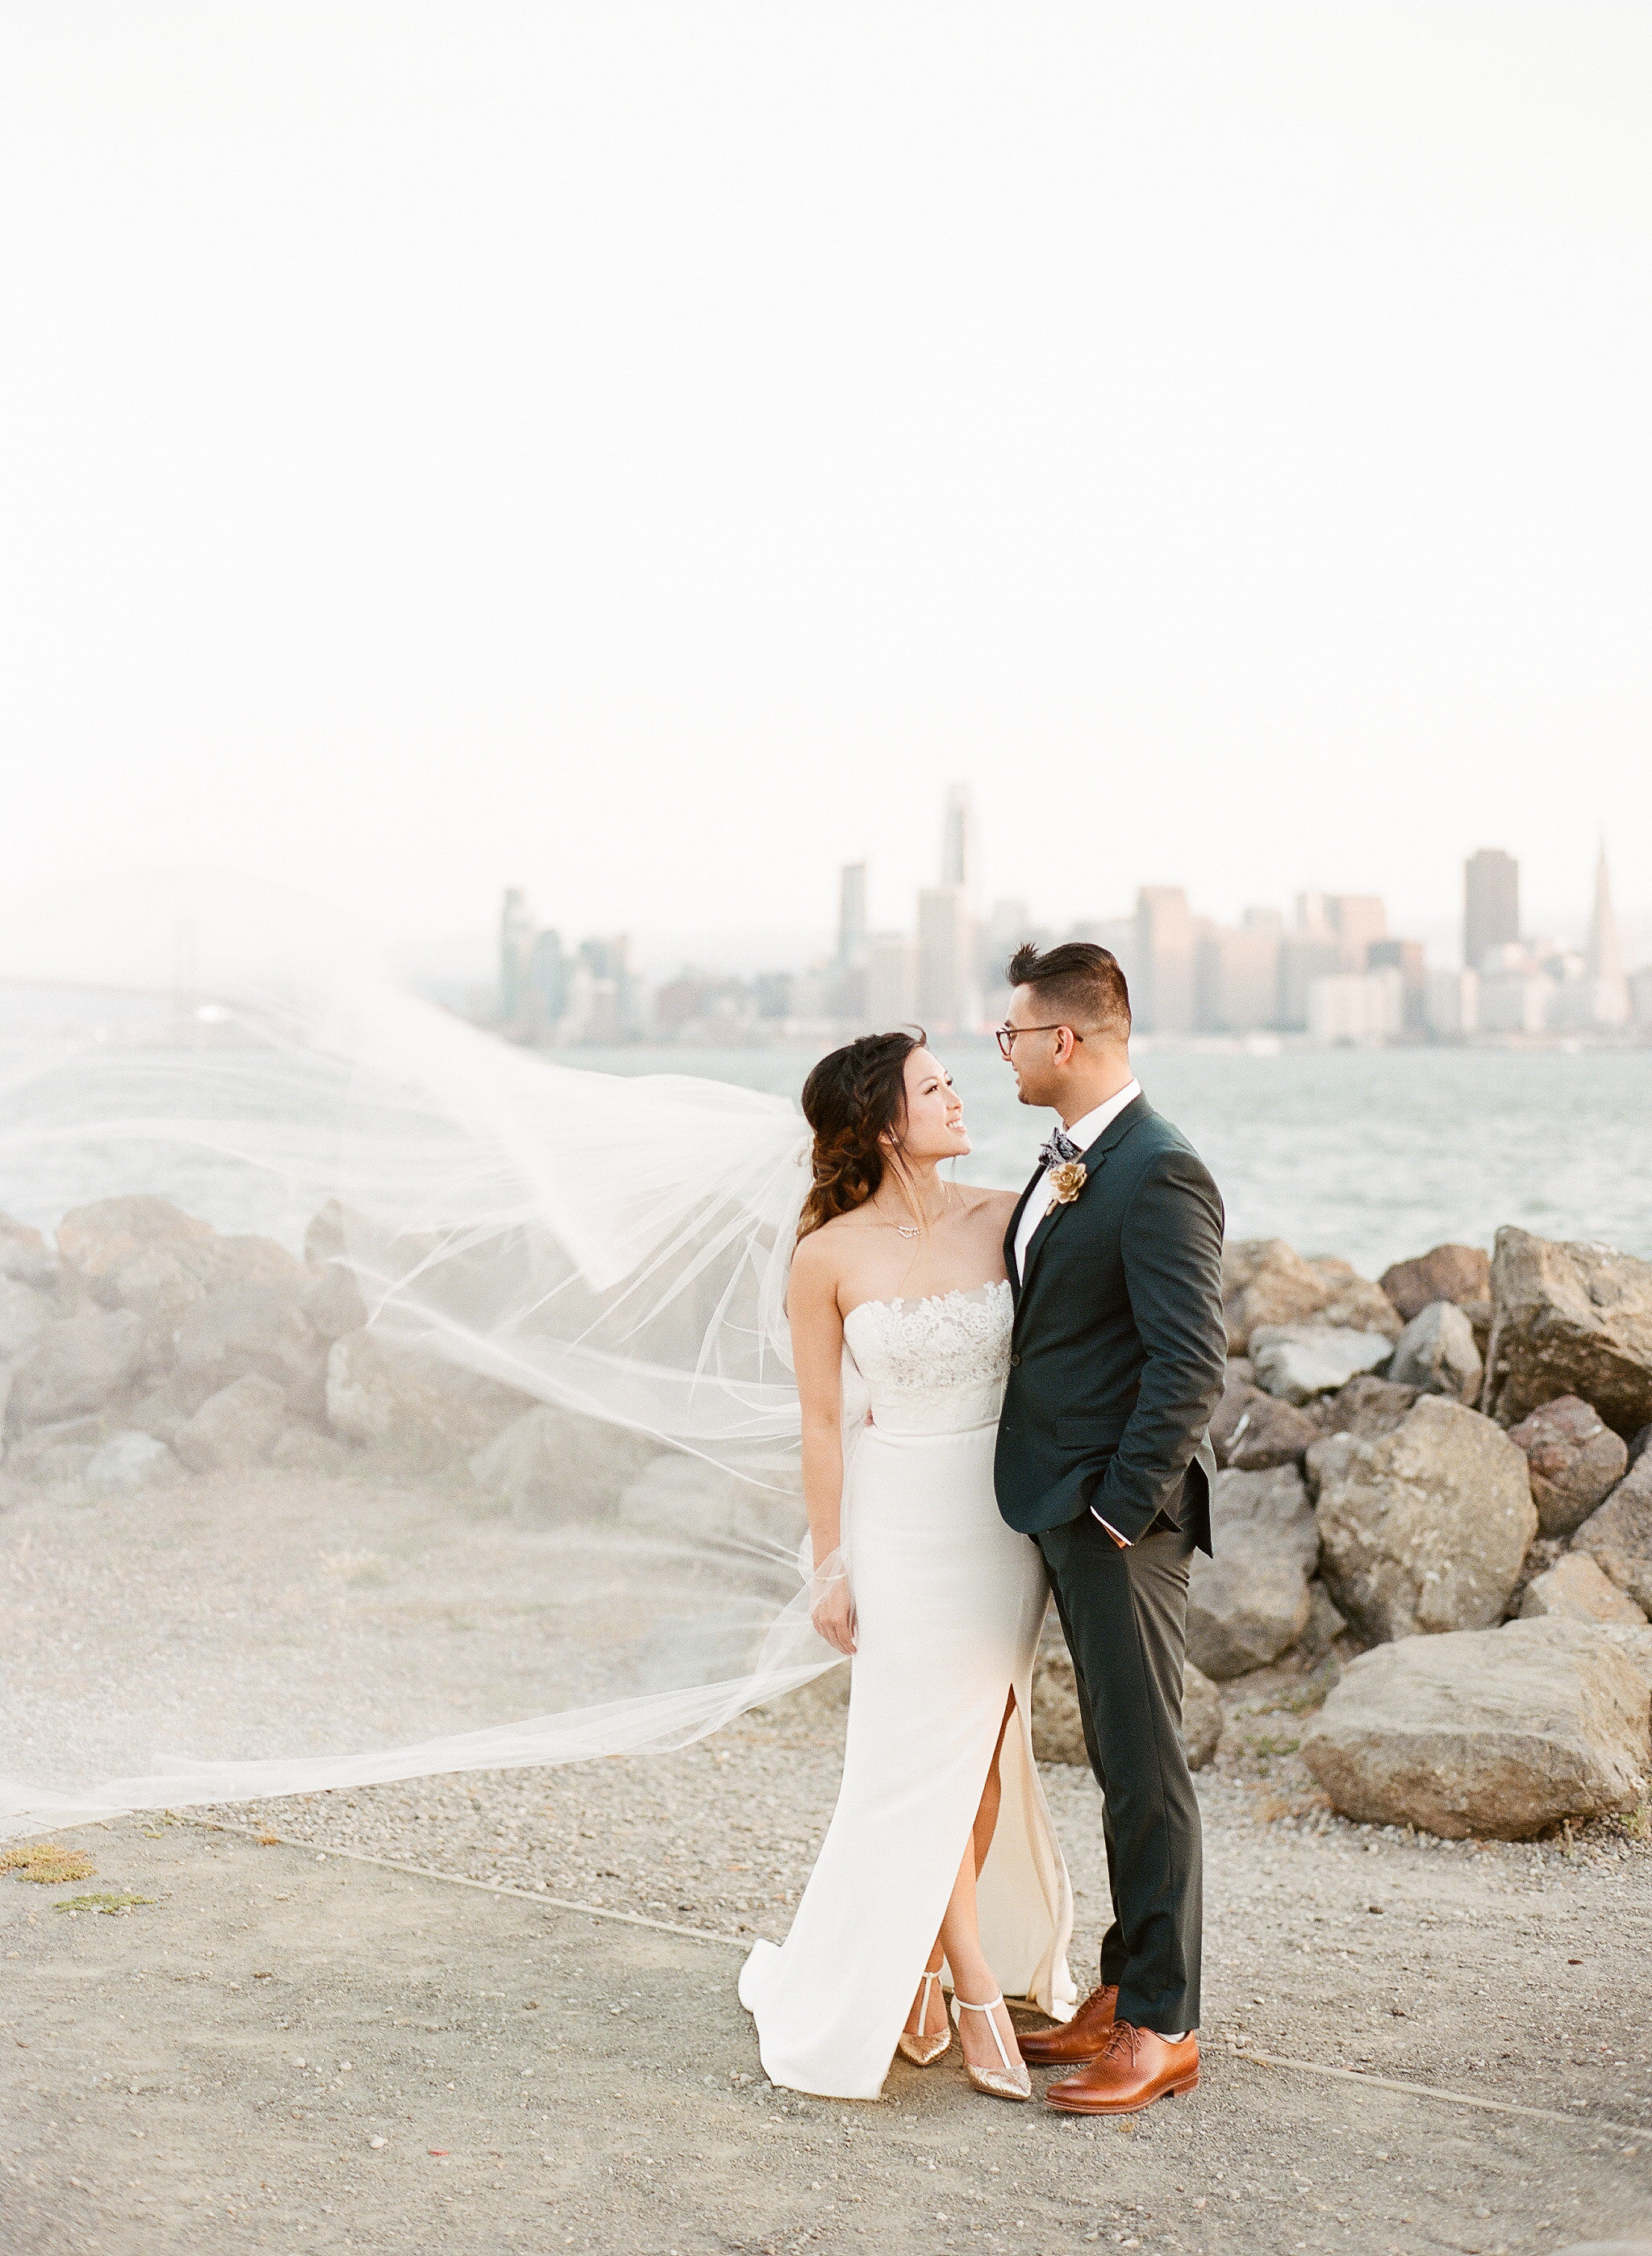 San Francisco Fine Art Film Photographer - Aracely Wedding